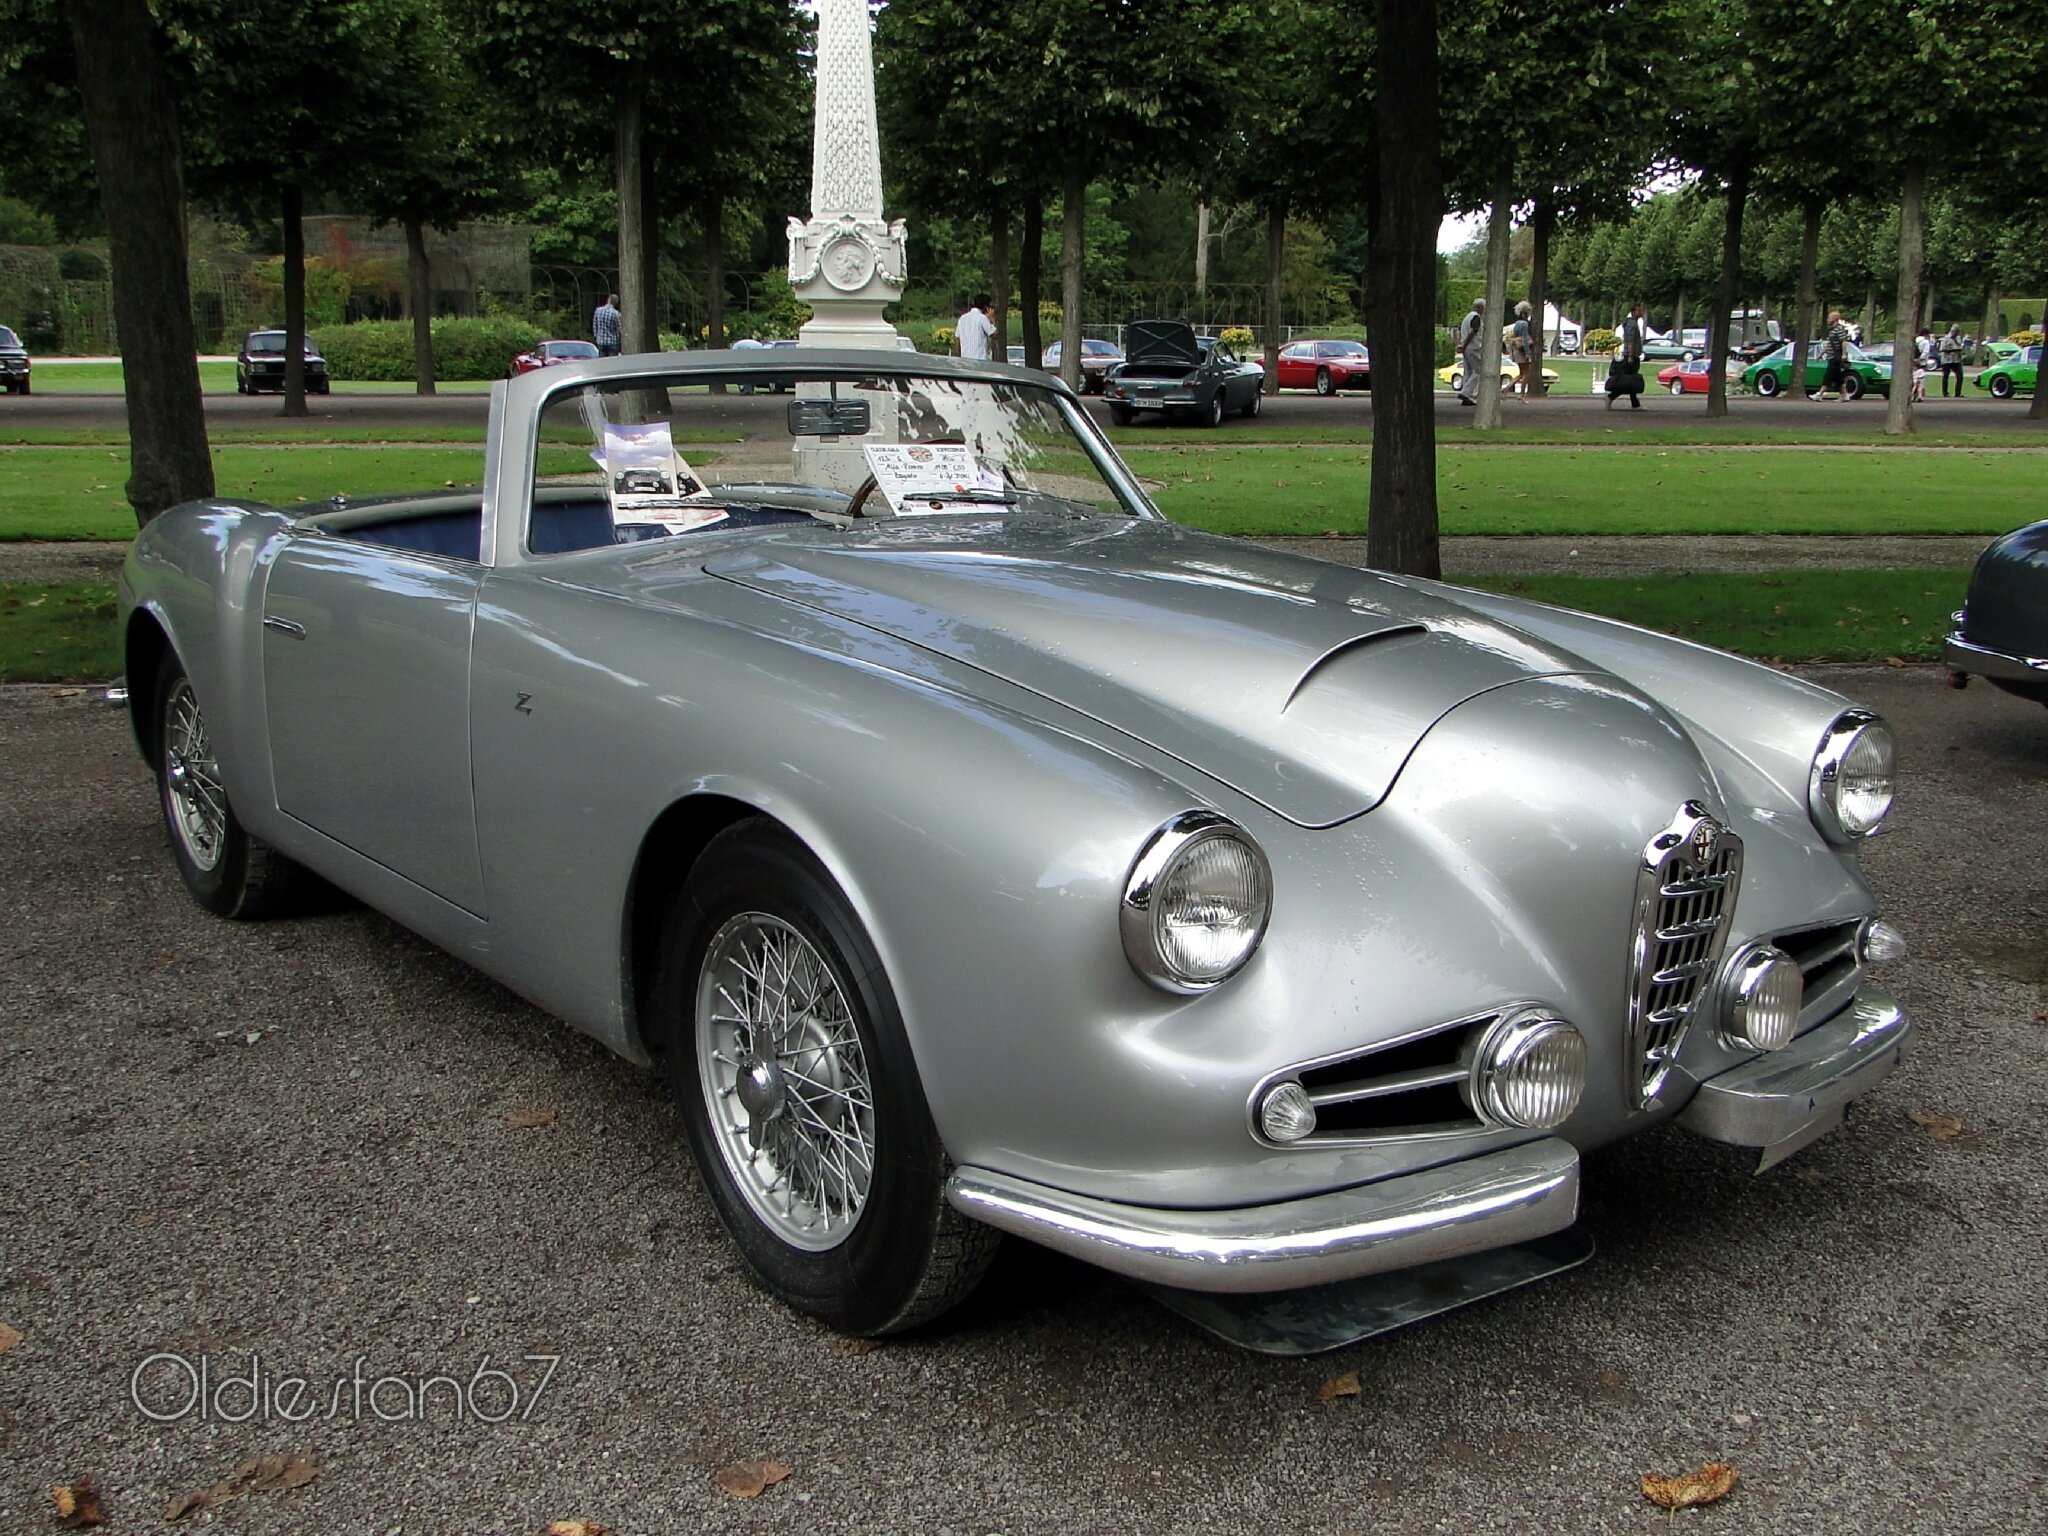 alfa romeo 1900 css cabriolet zagato 1956 oldiesfan67 mon blog auto. Black Bedroom Furniture Sets. Home Design Ideas